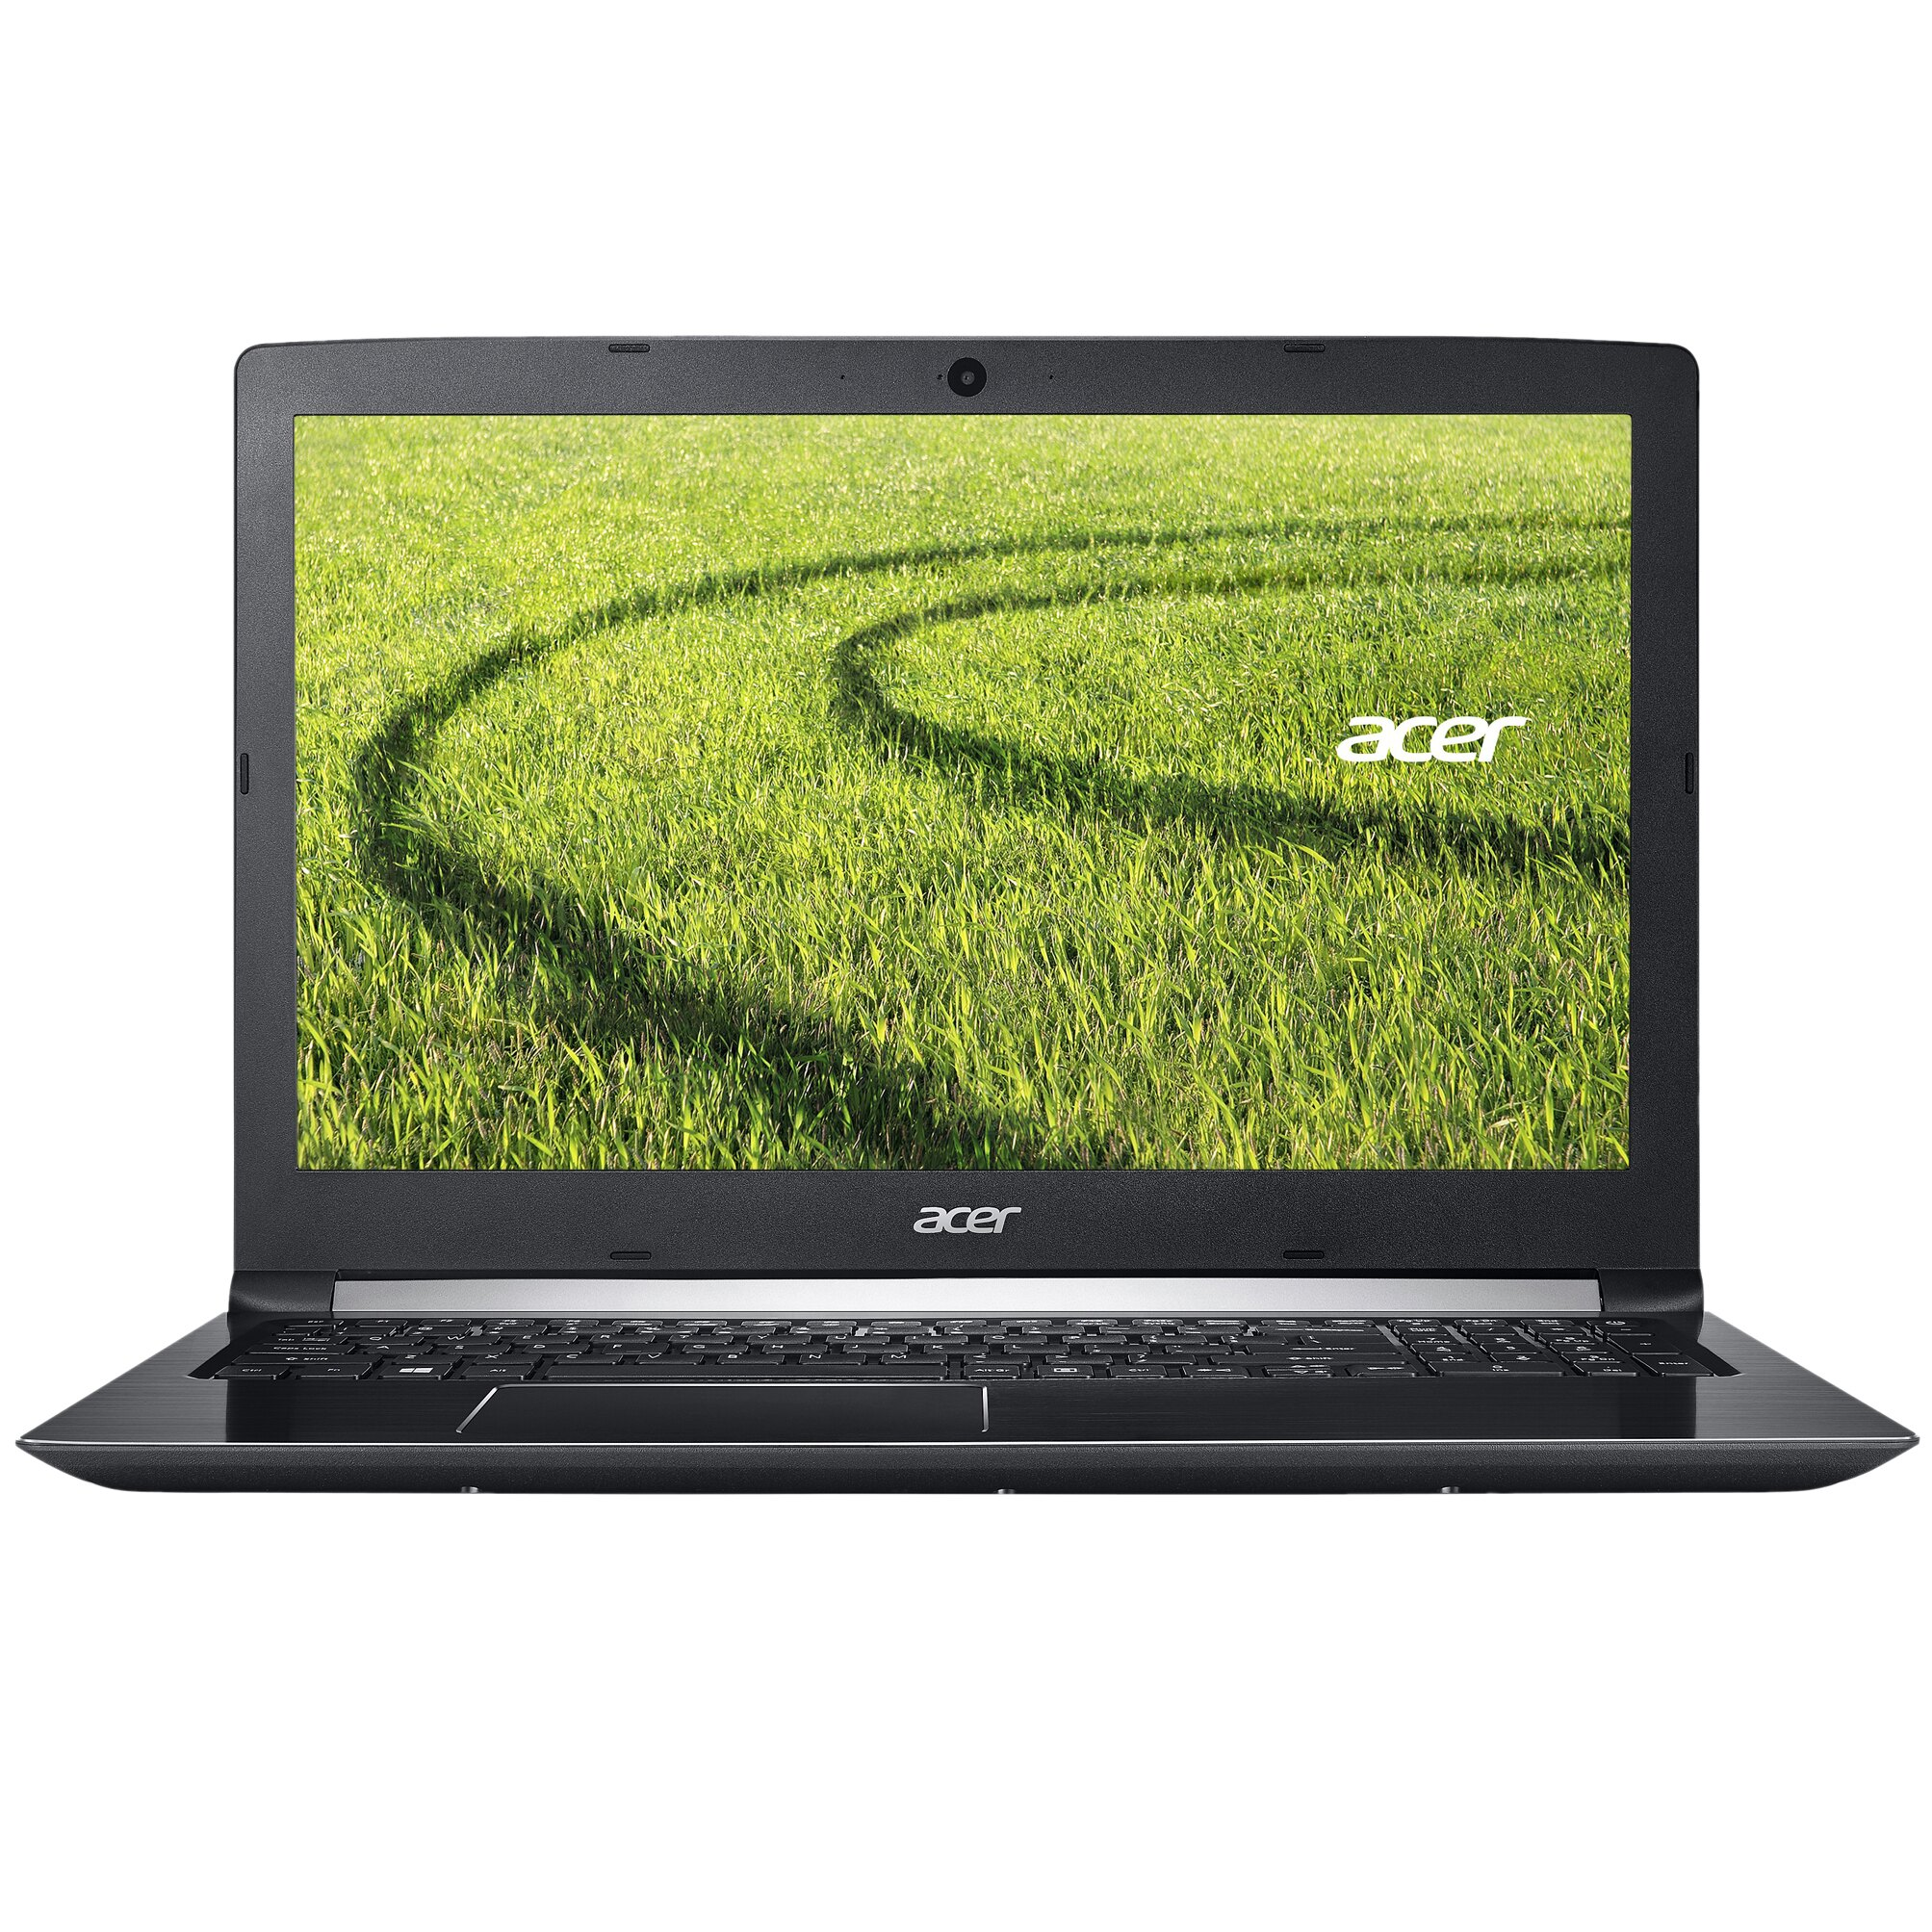 Acer Laptop Intel Core i5 2.50 GHz 8 GB Ram 1TB HDD Windows 10 Home 0